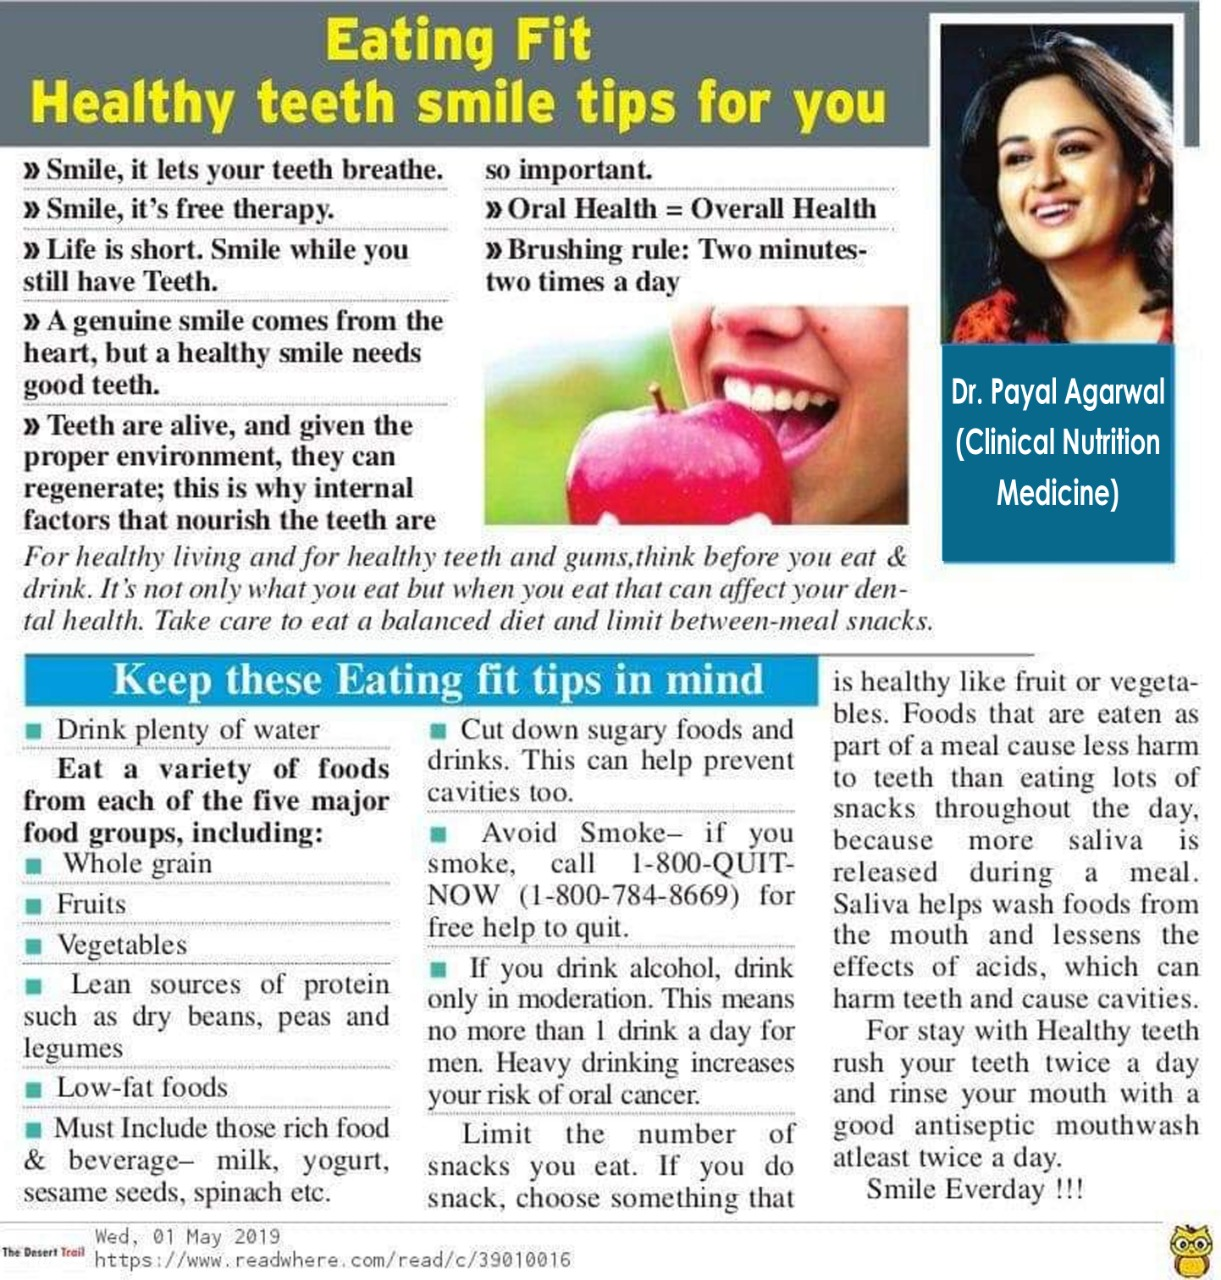 Eating fit - Healthy Teeth Smile Tips For You